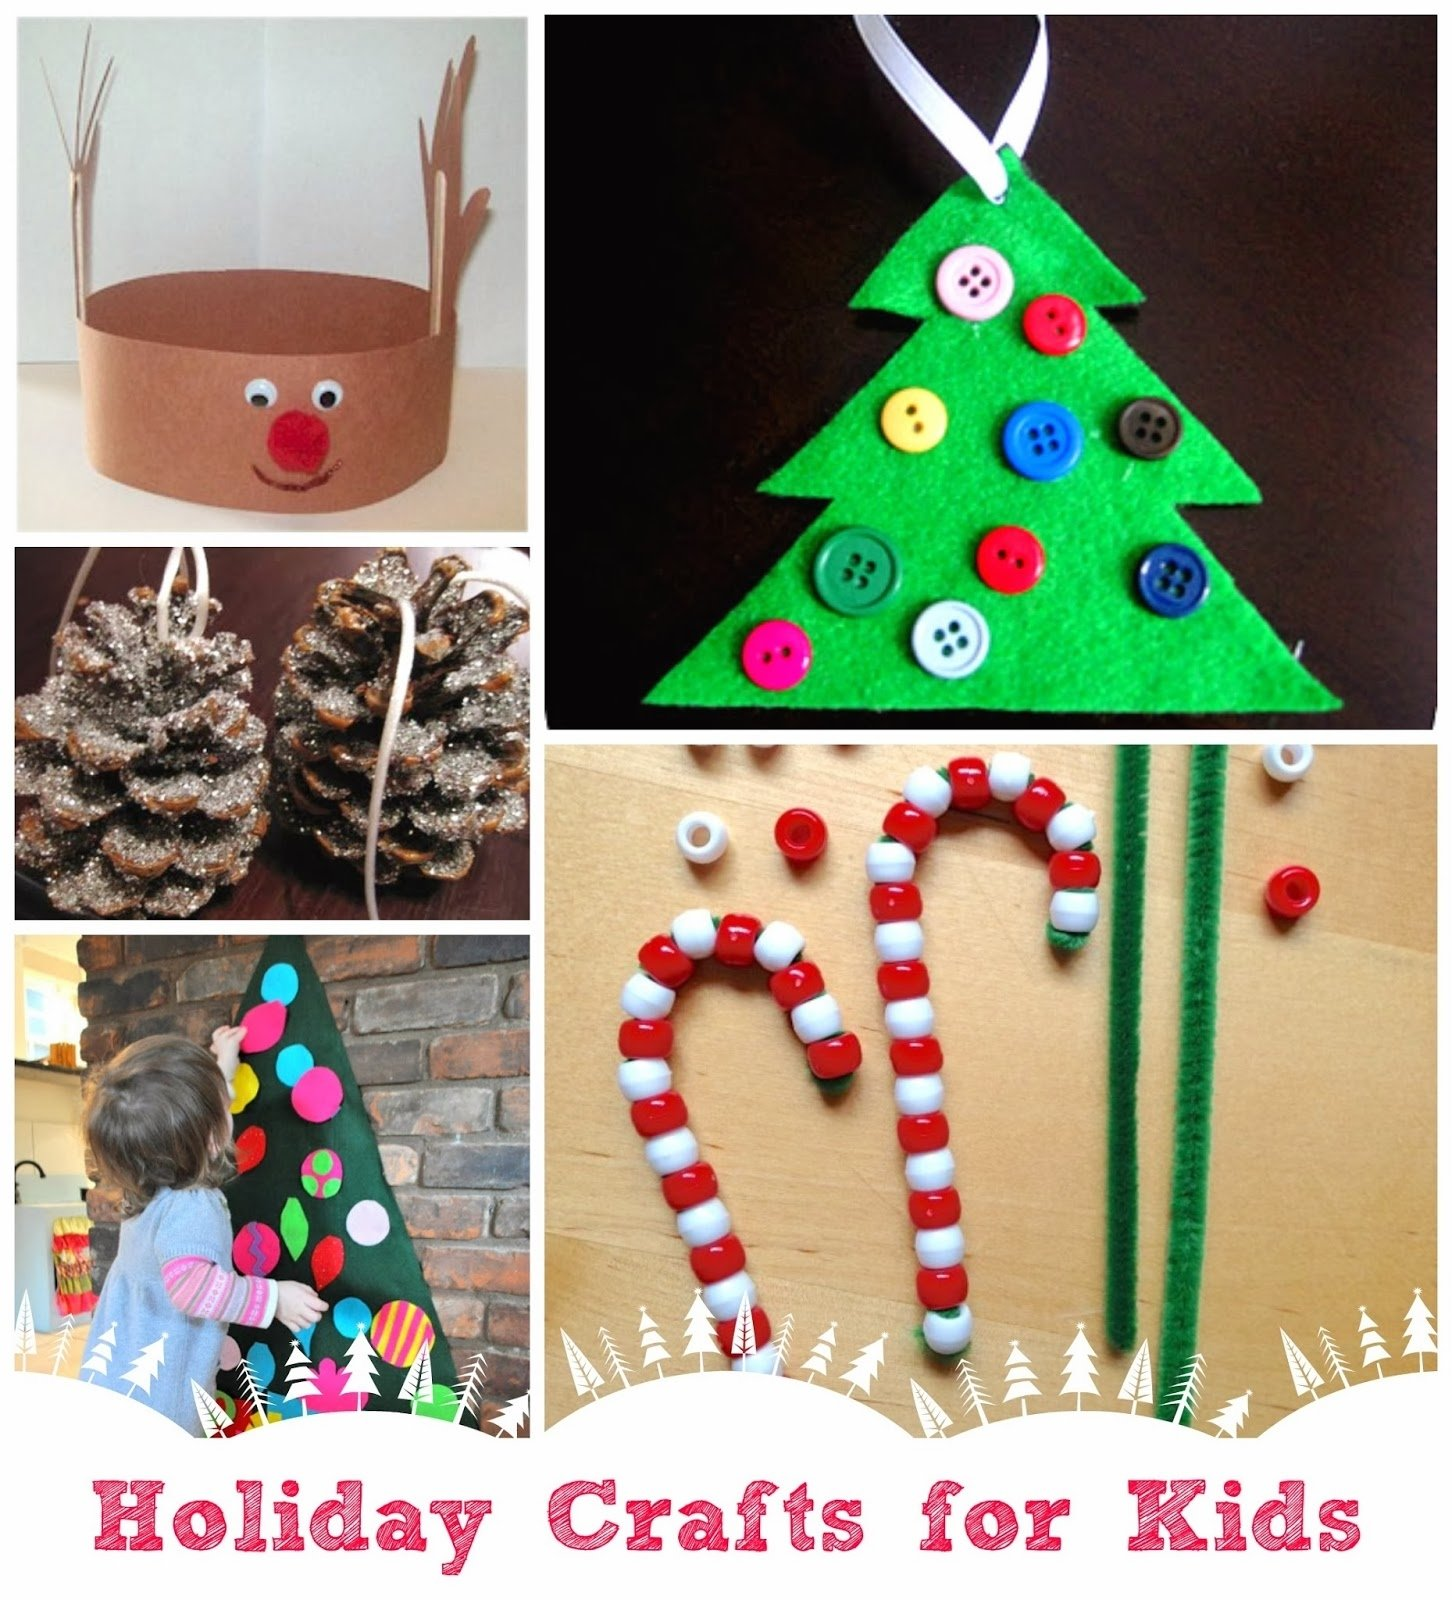 10 Awesome Pinterest Christmas Ideas For Kids winter crafts and activities for kids the idea room ideas 1 loversiq 2020